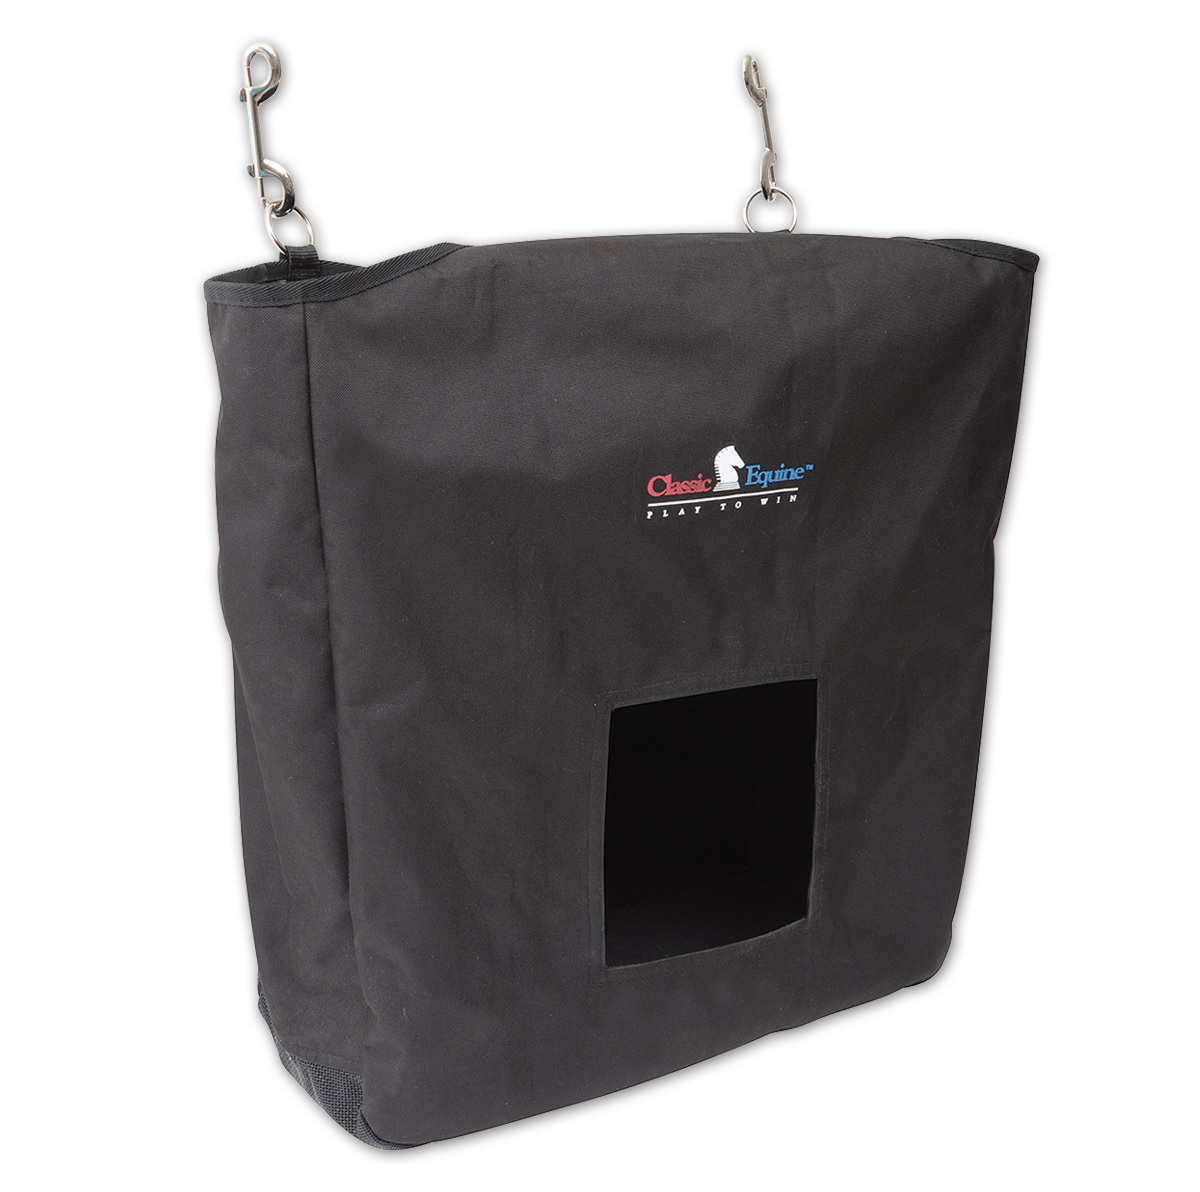 Basic Hey Bag by Classic Equine